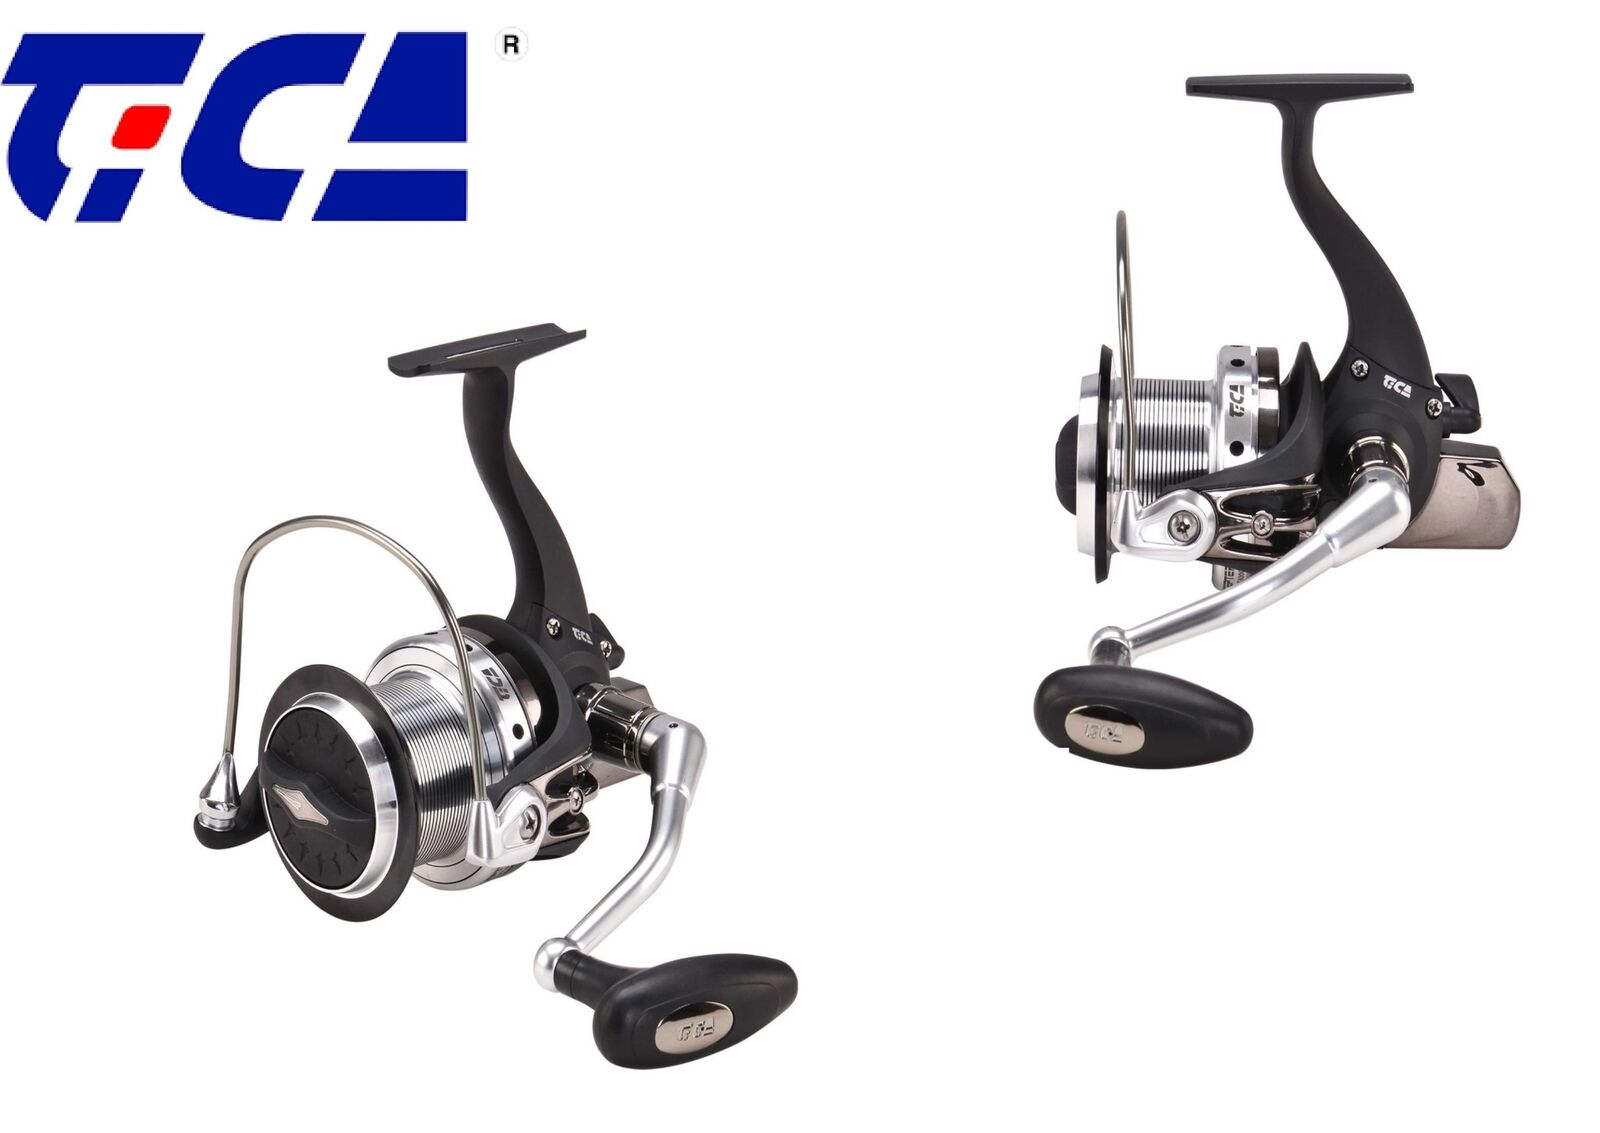 Tica Galant-GBAT longcast  sea reel Left Right Interchangeable Handle  top brand